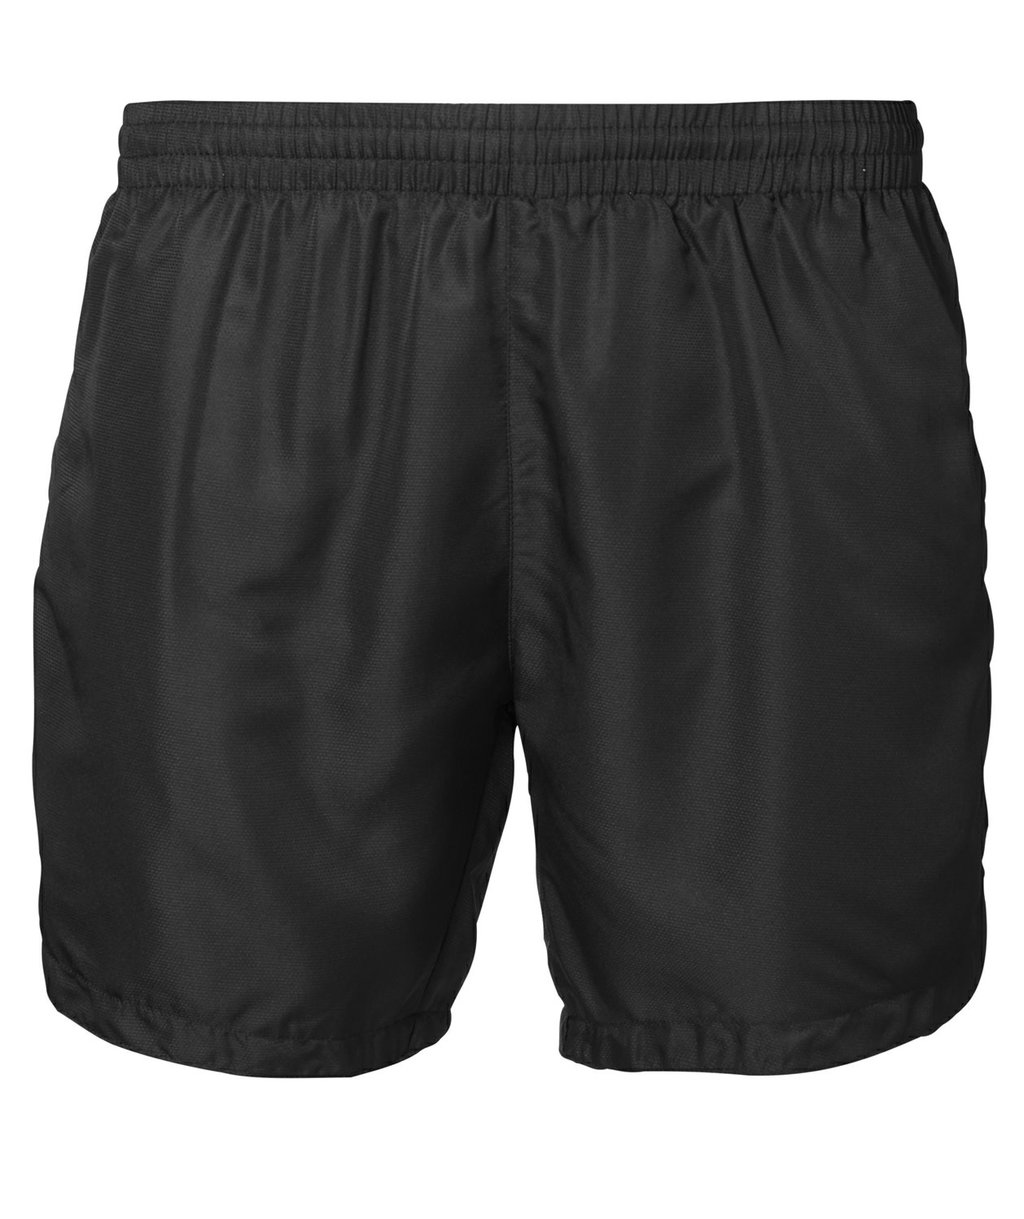 ID Active Sports shorts, Sort